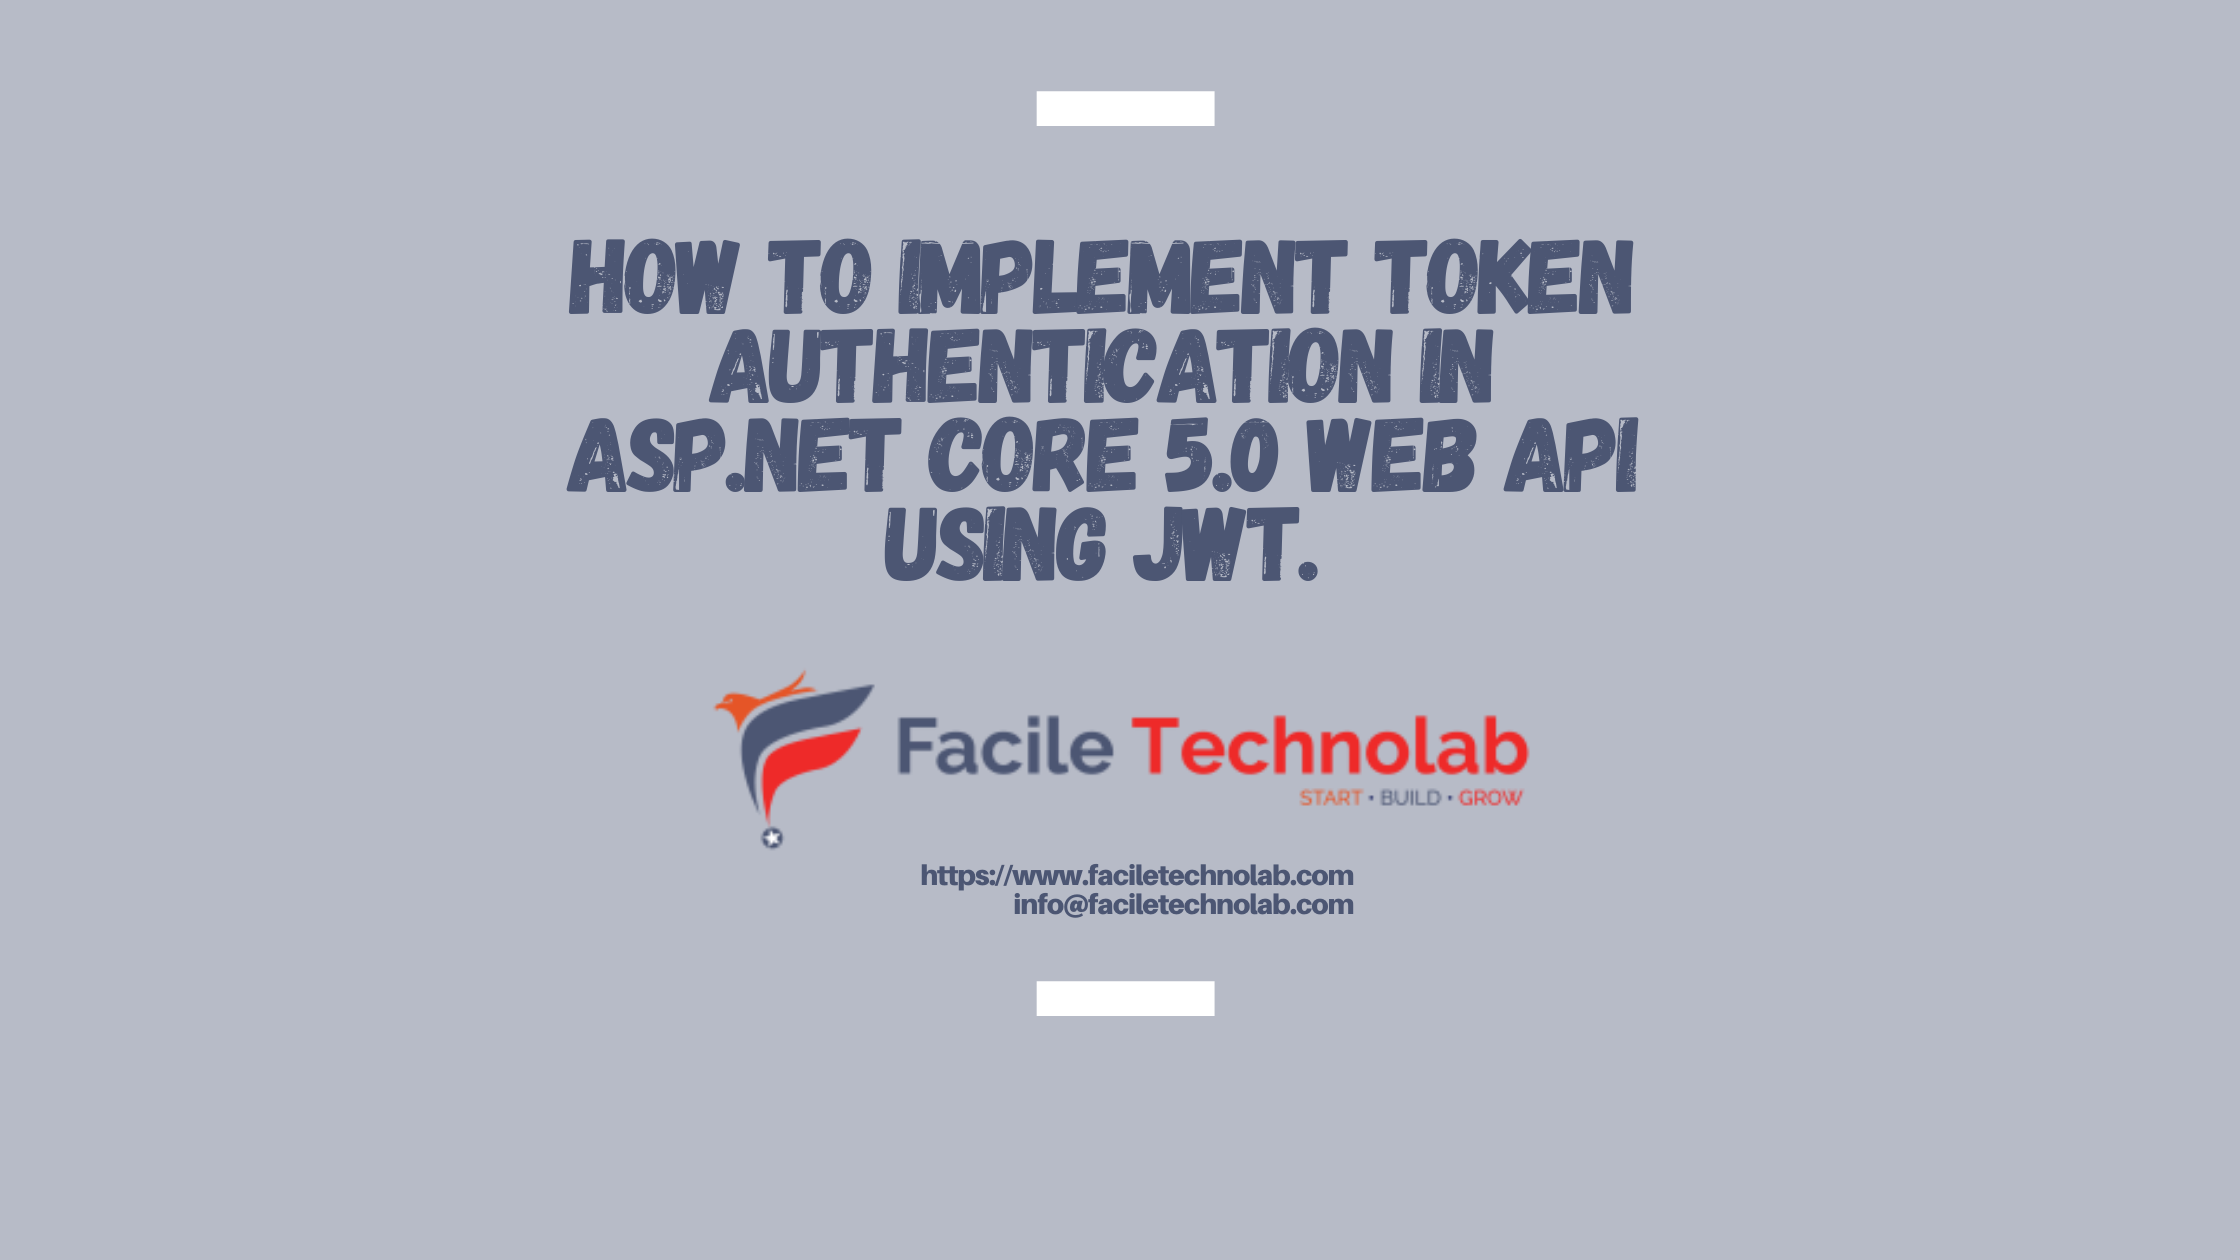 how to implement token authentication in ASP.NET Core 5.0 Web API using JWT